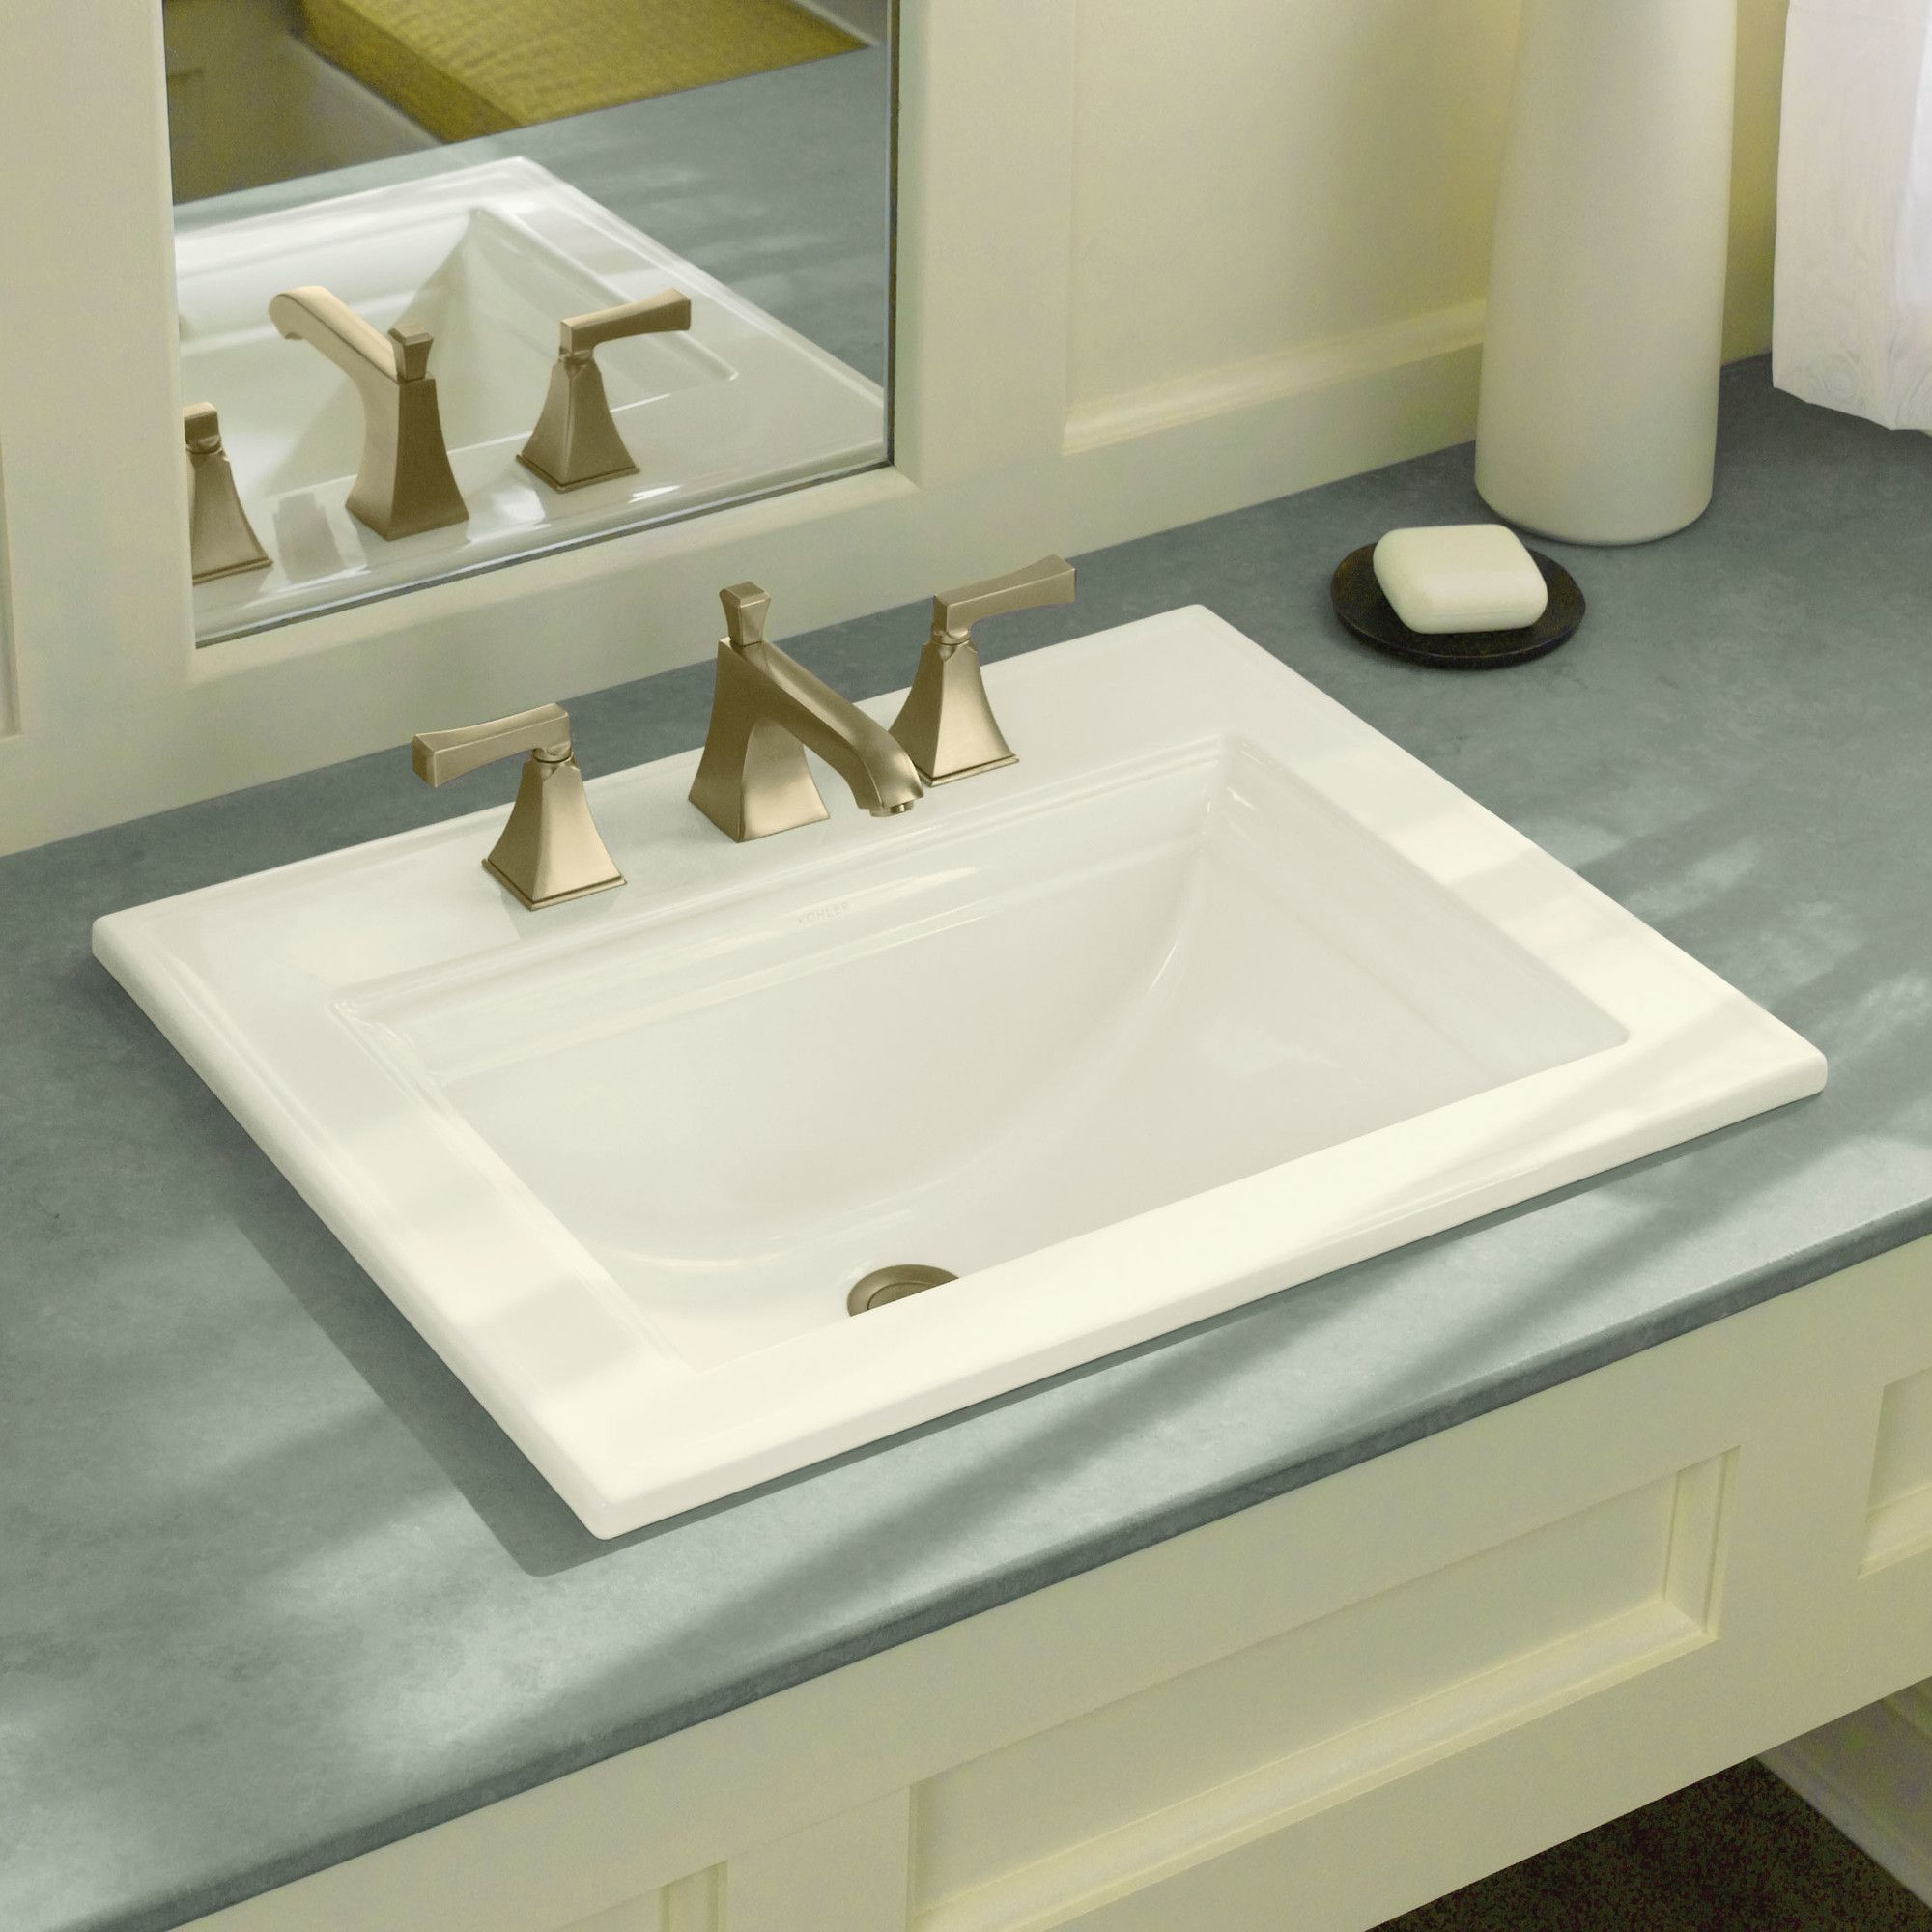 Memoirs Stately Drop In Bathroom Sink With 8 Widespread Faucet Holes